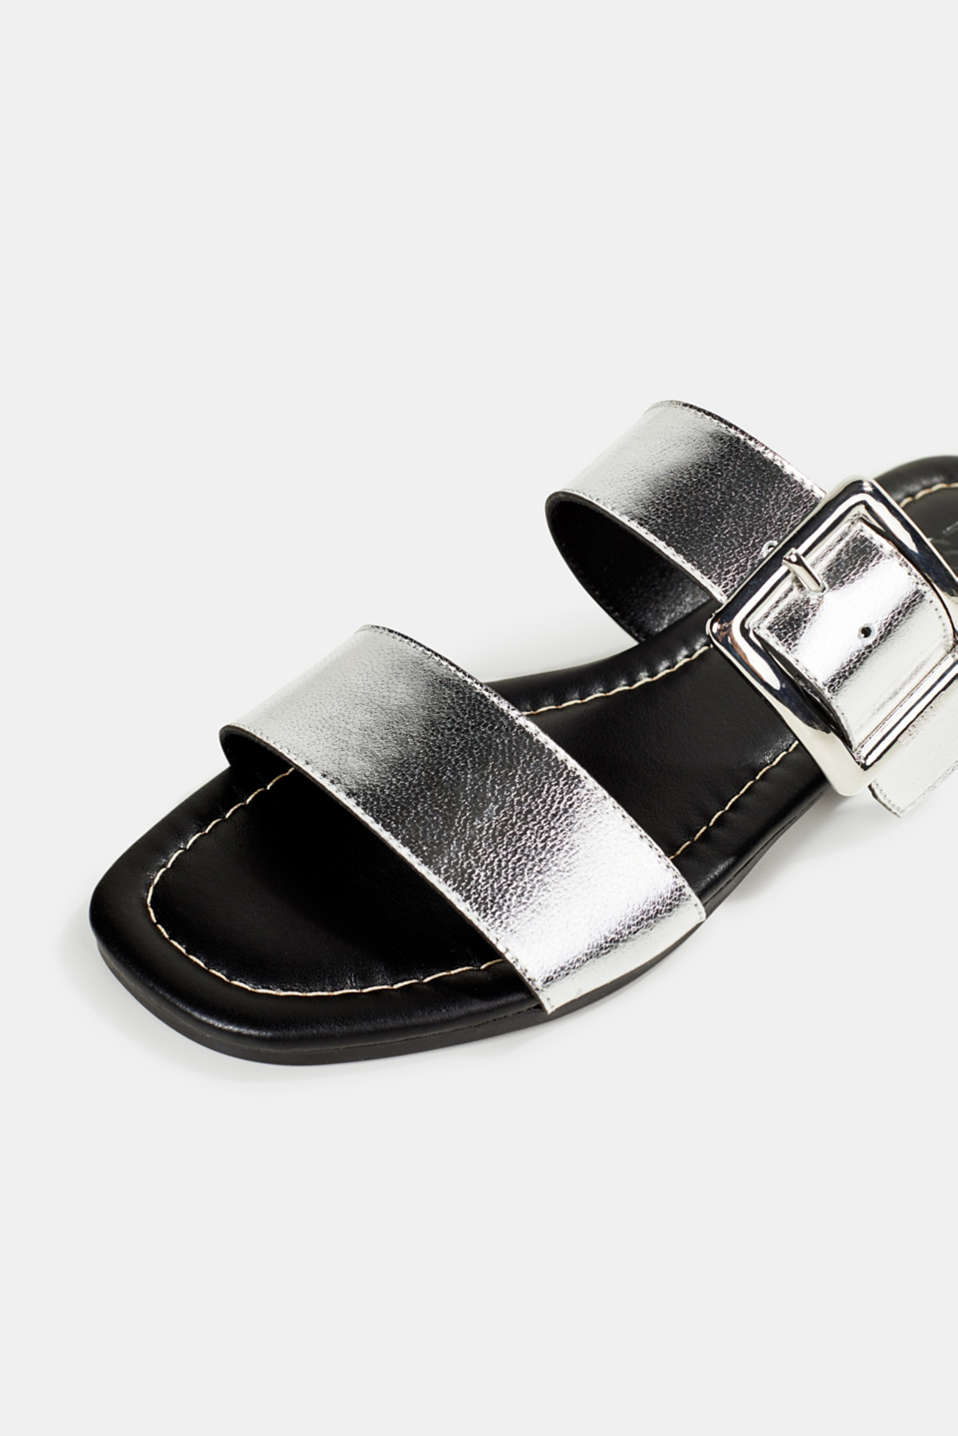 Leather mules with buckles, SILVER, detail image number 4